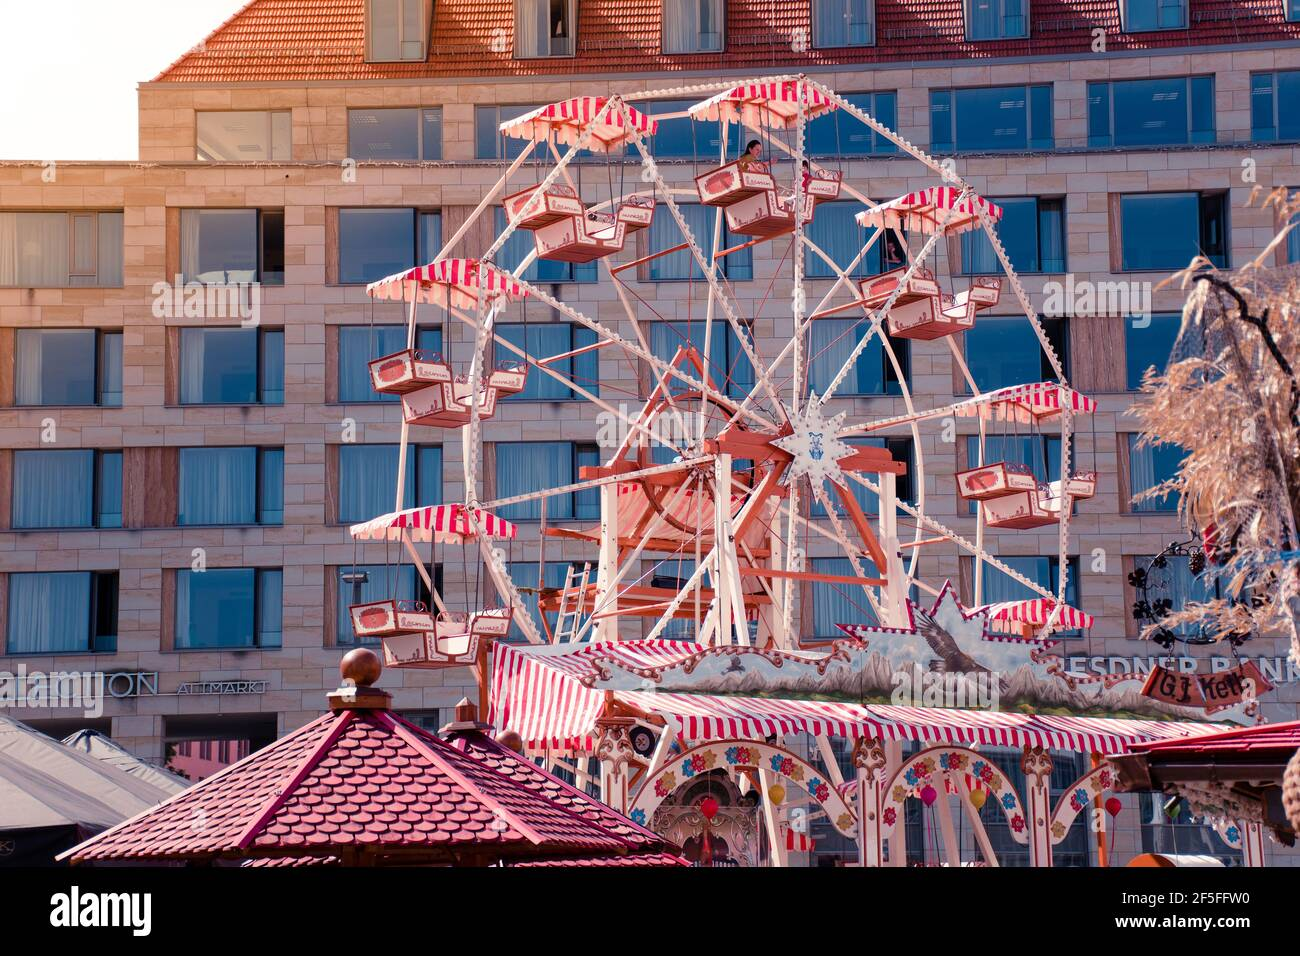 17 May 2019 Dresden, Germany - Ferris wheel at Altmarkt in morning. Trade center on background. Stock Photo